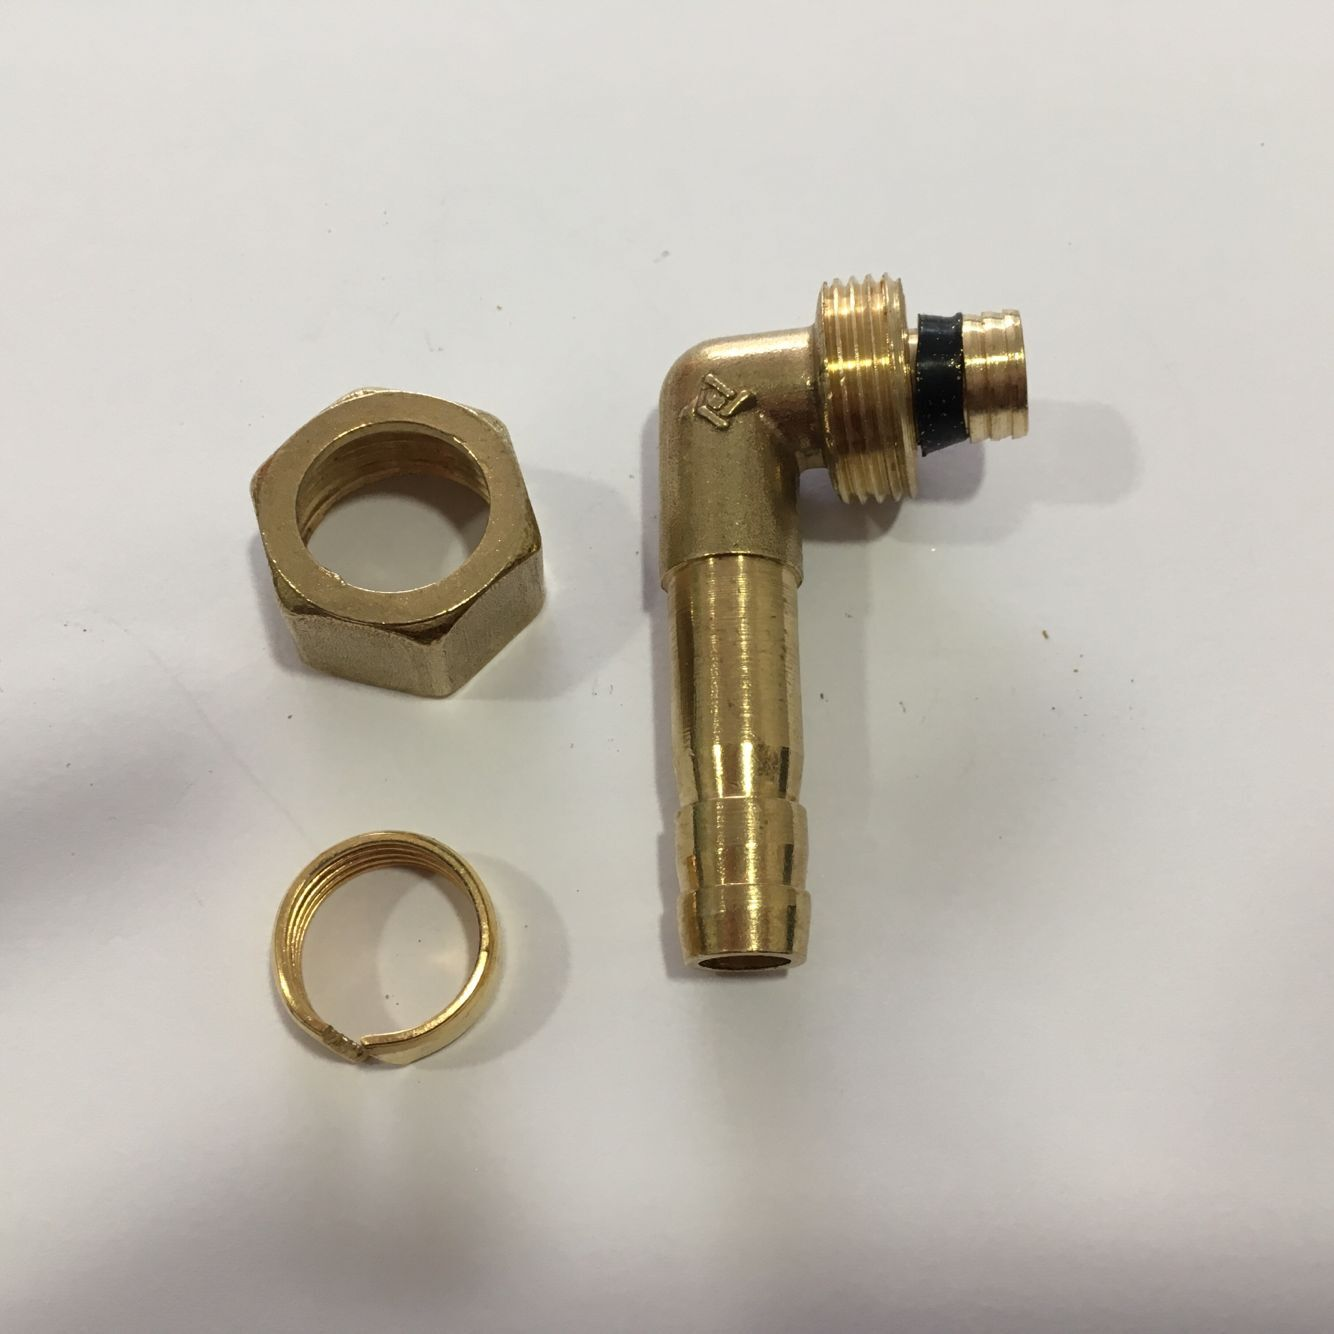 1216 aluminum plastic pipe, gas nozzle, gas pipe, gas, natural gas joint, pagoda gas nozzle, Green head socket, all copper elbow